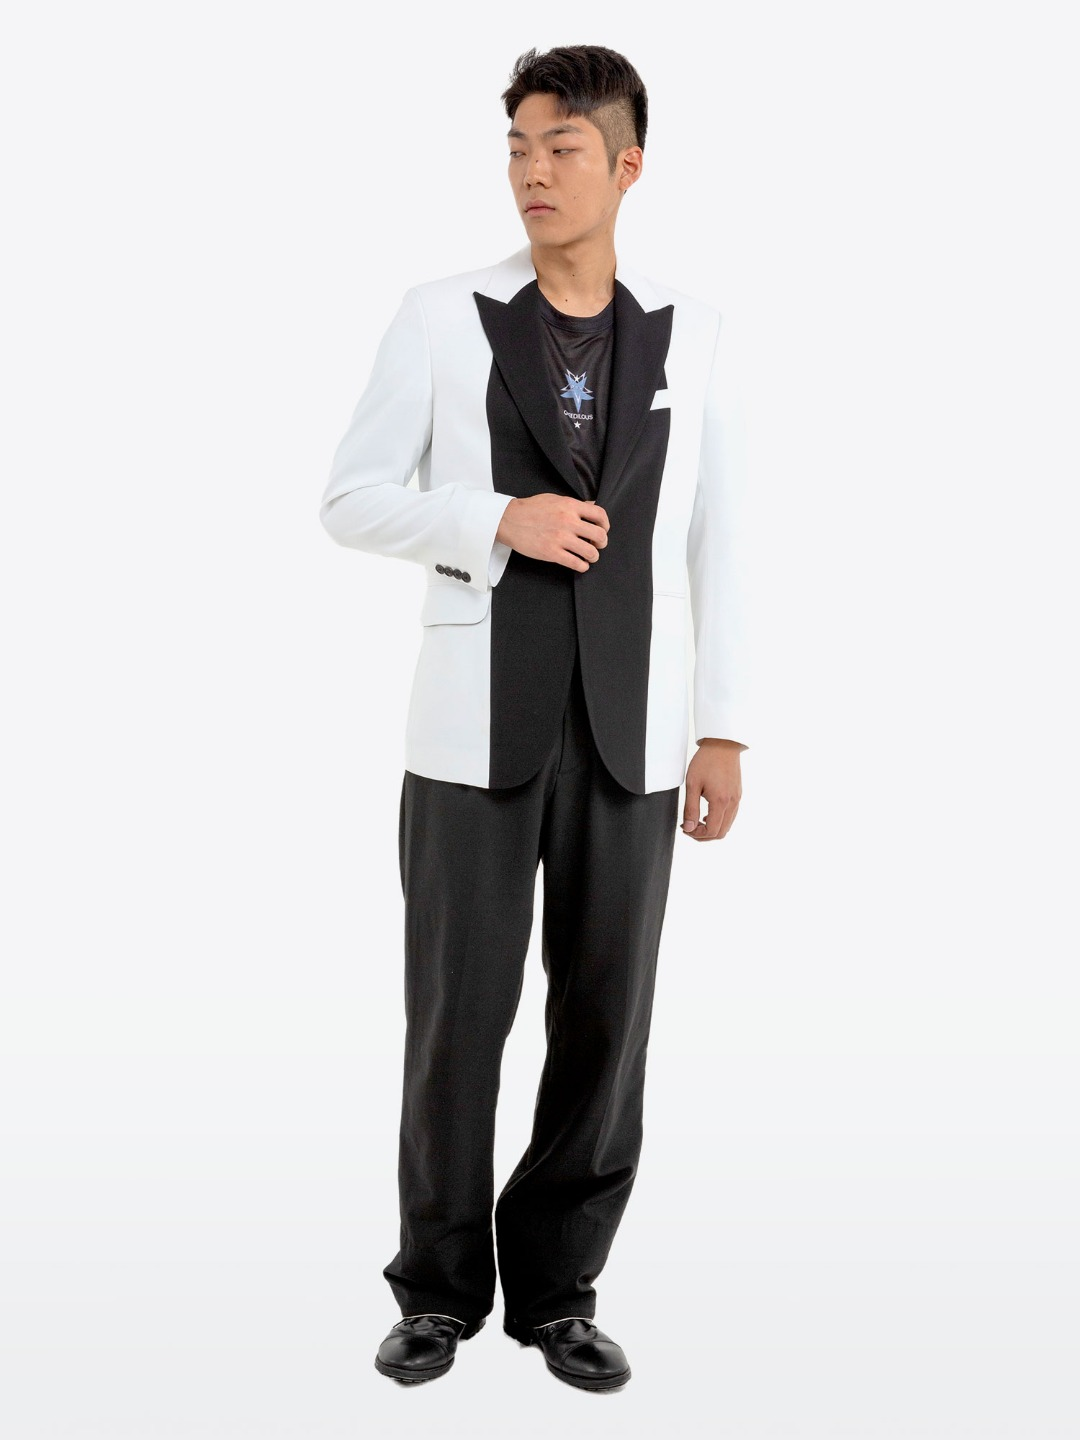 BLACK COMBI WHITE JACKET-룩북용